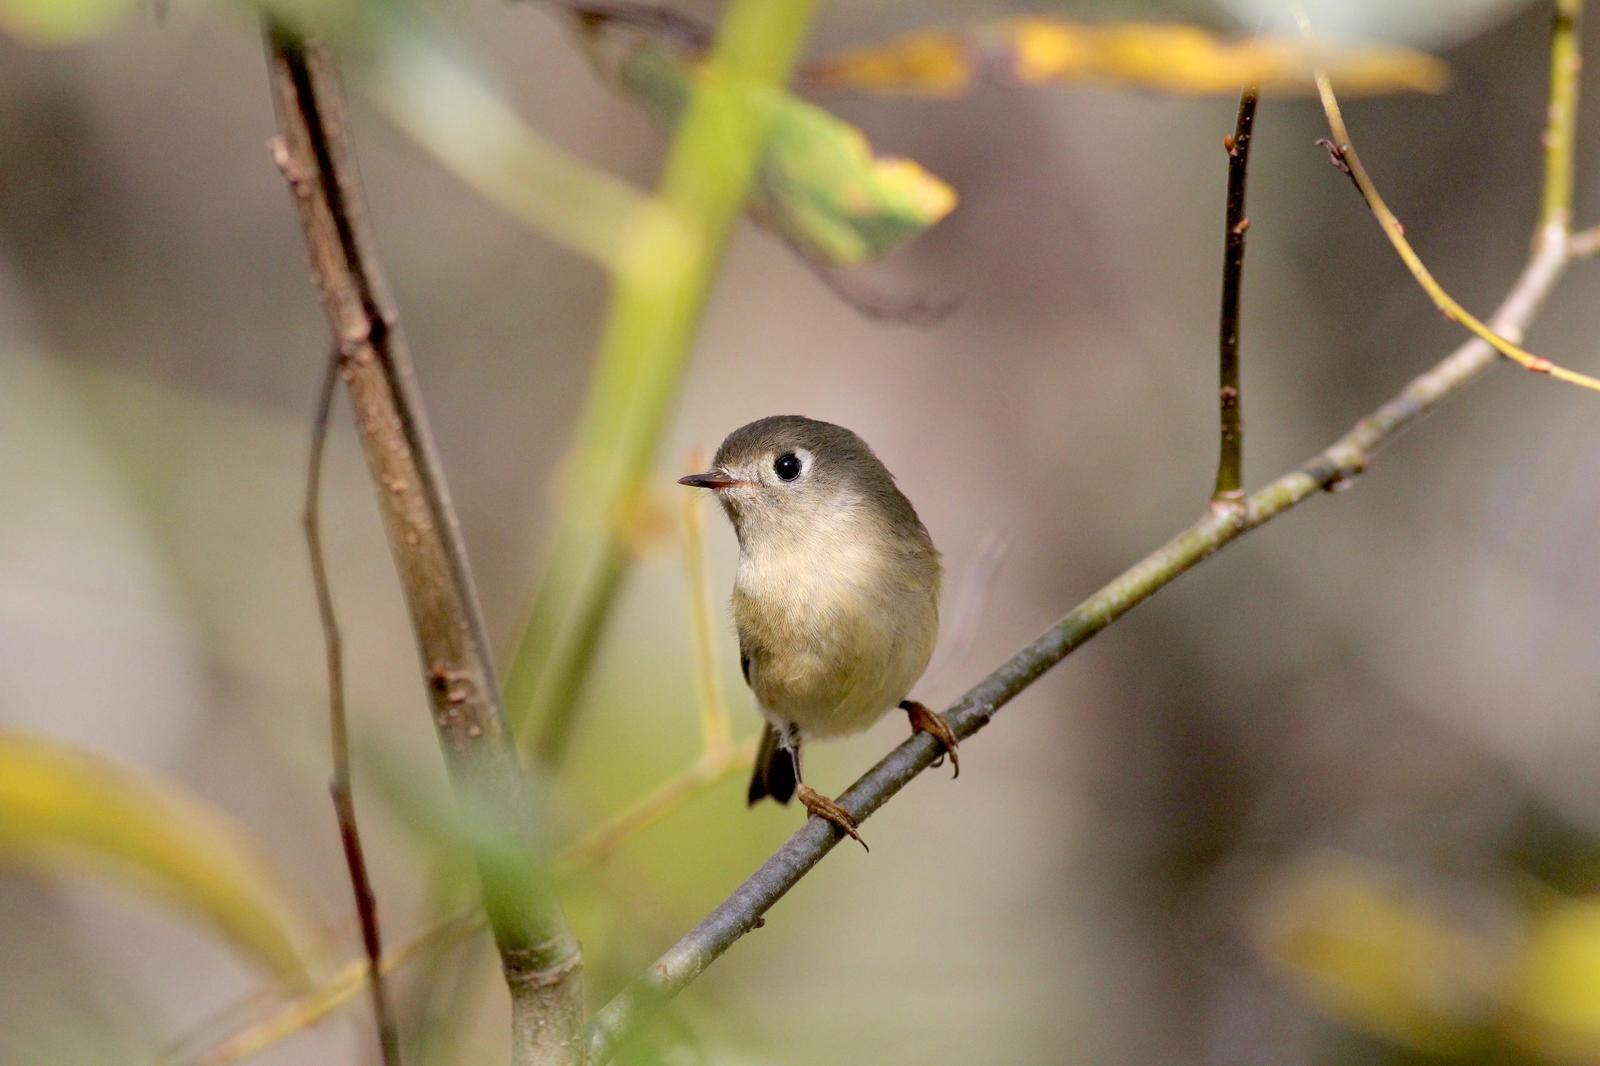 Ruby-crowned Kinglet Photo by Kathryn Keith